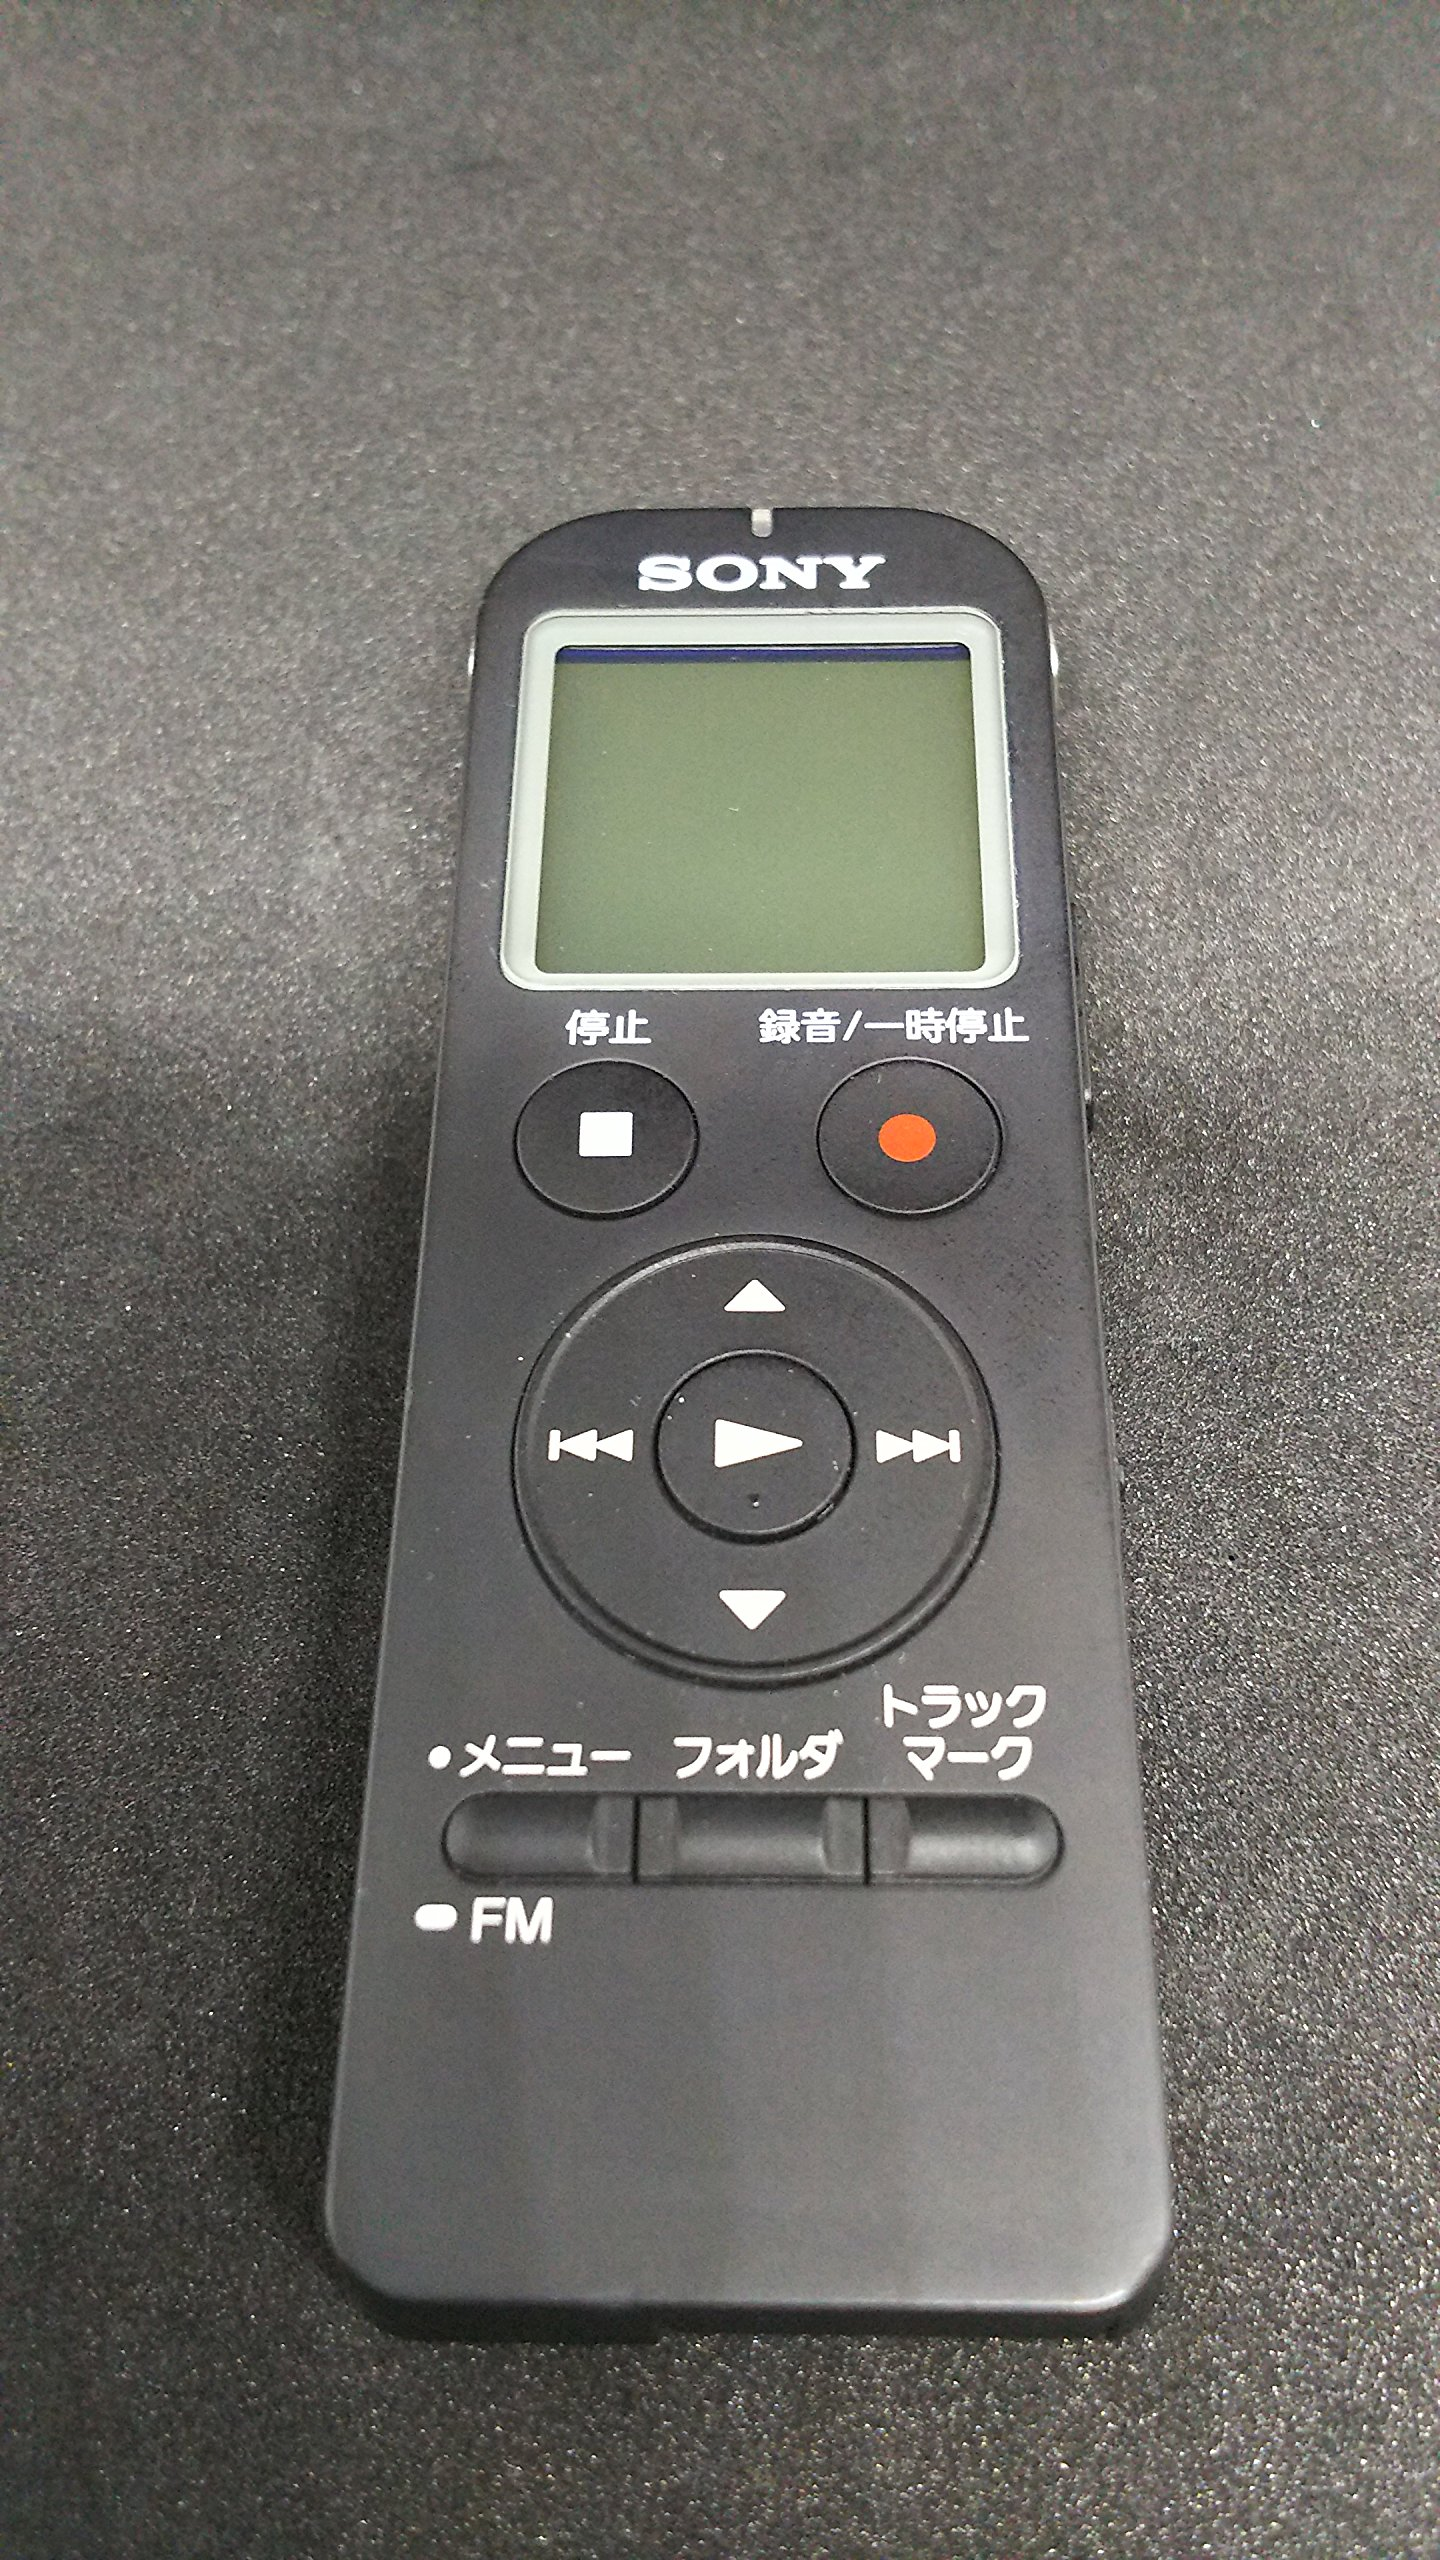 Sony stereo IC recorder with FM tuner 4GB black ICD-UX533FA / B